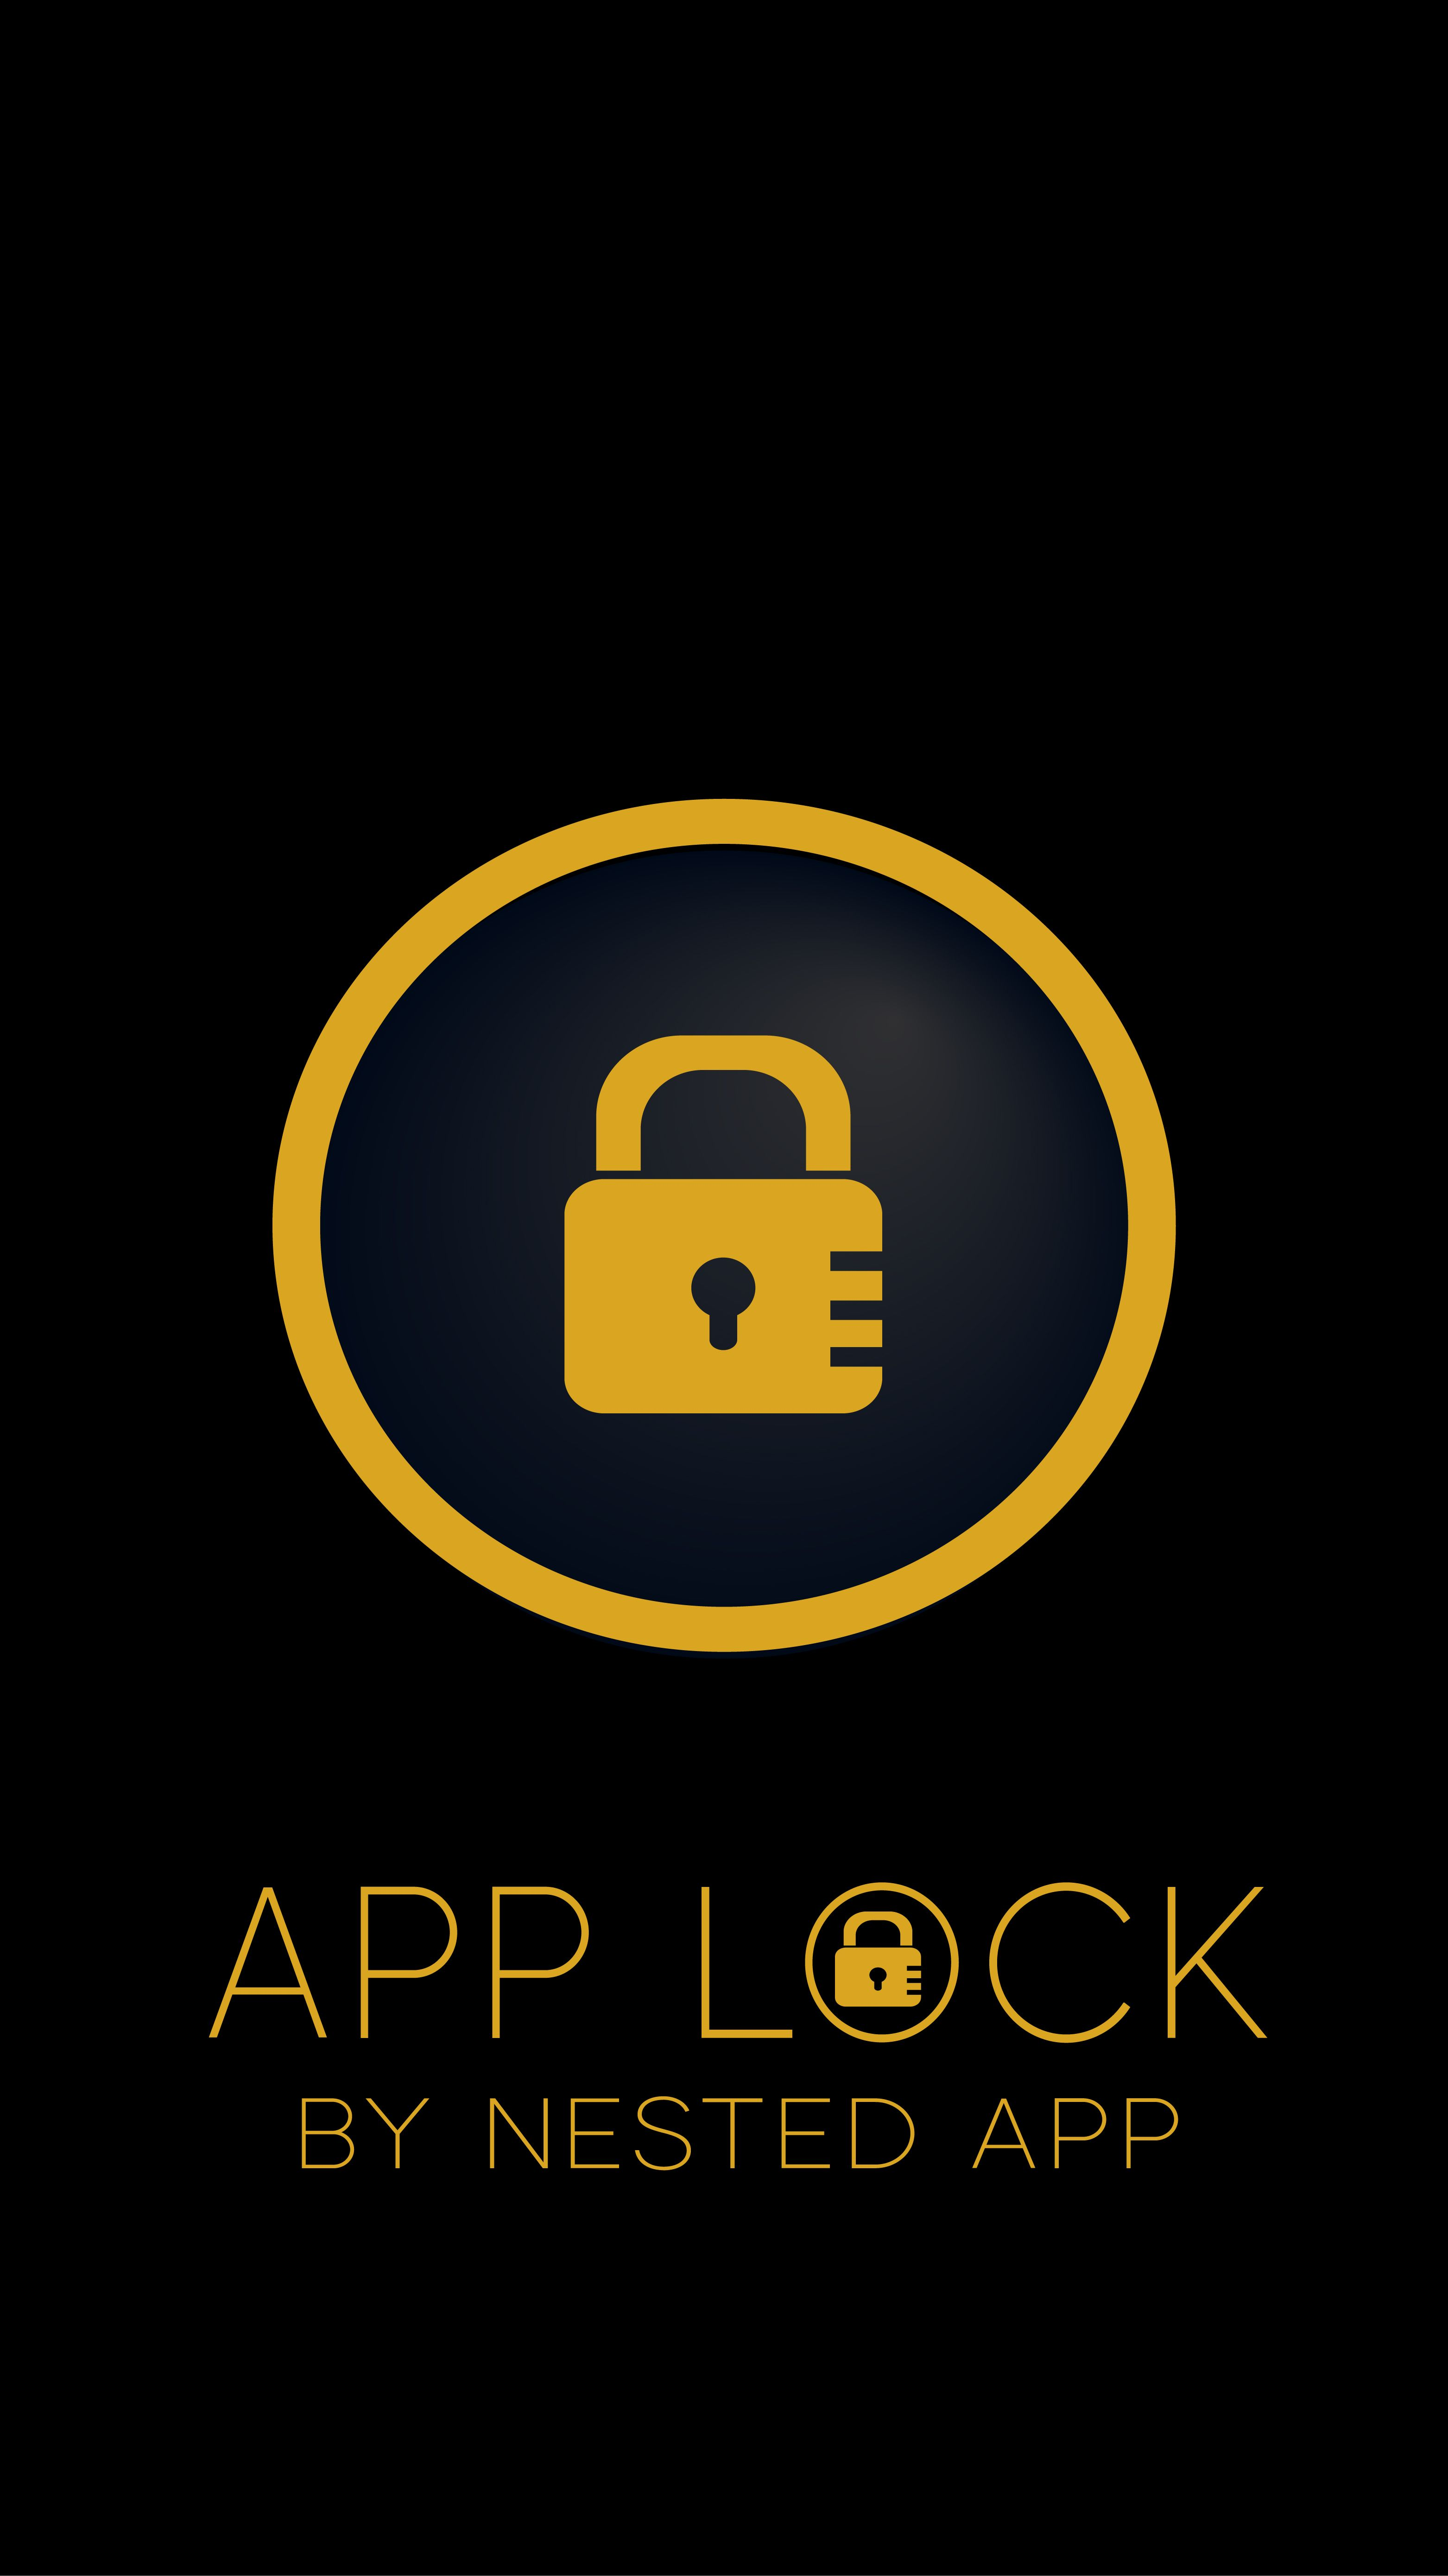 Are You Looking For Best App Locker For Your Android Phone